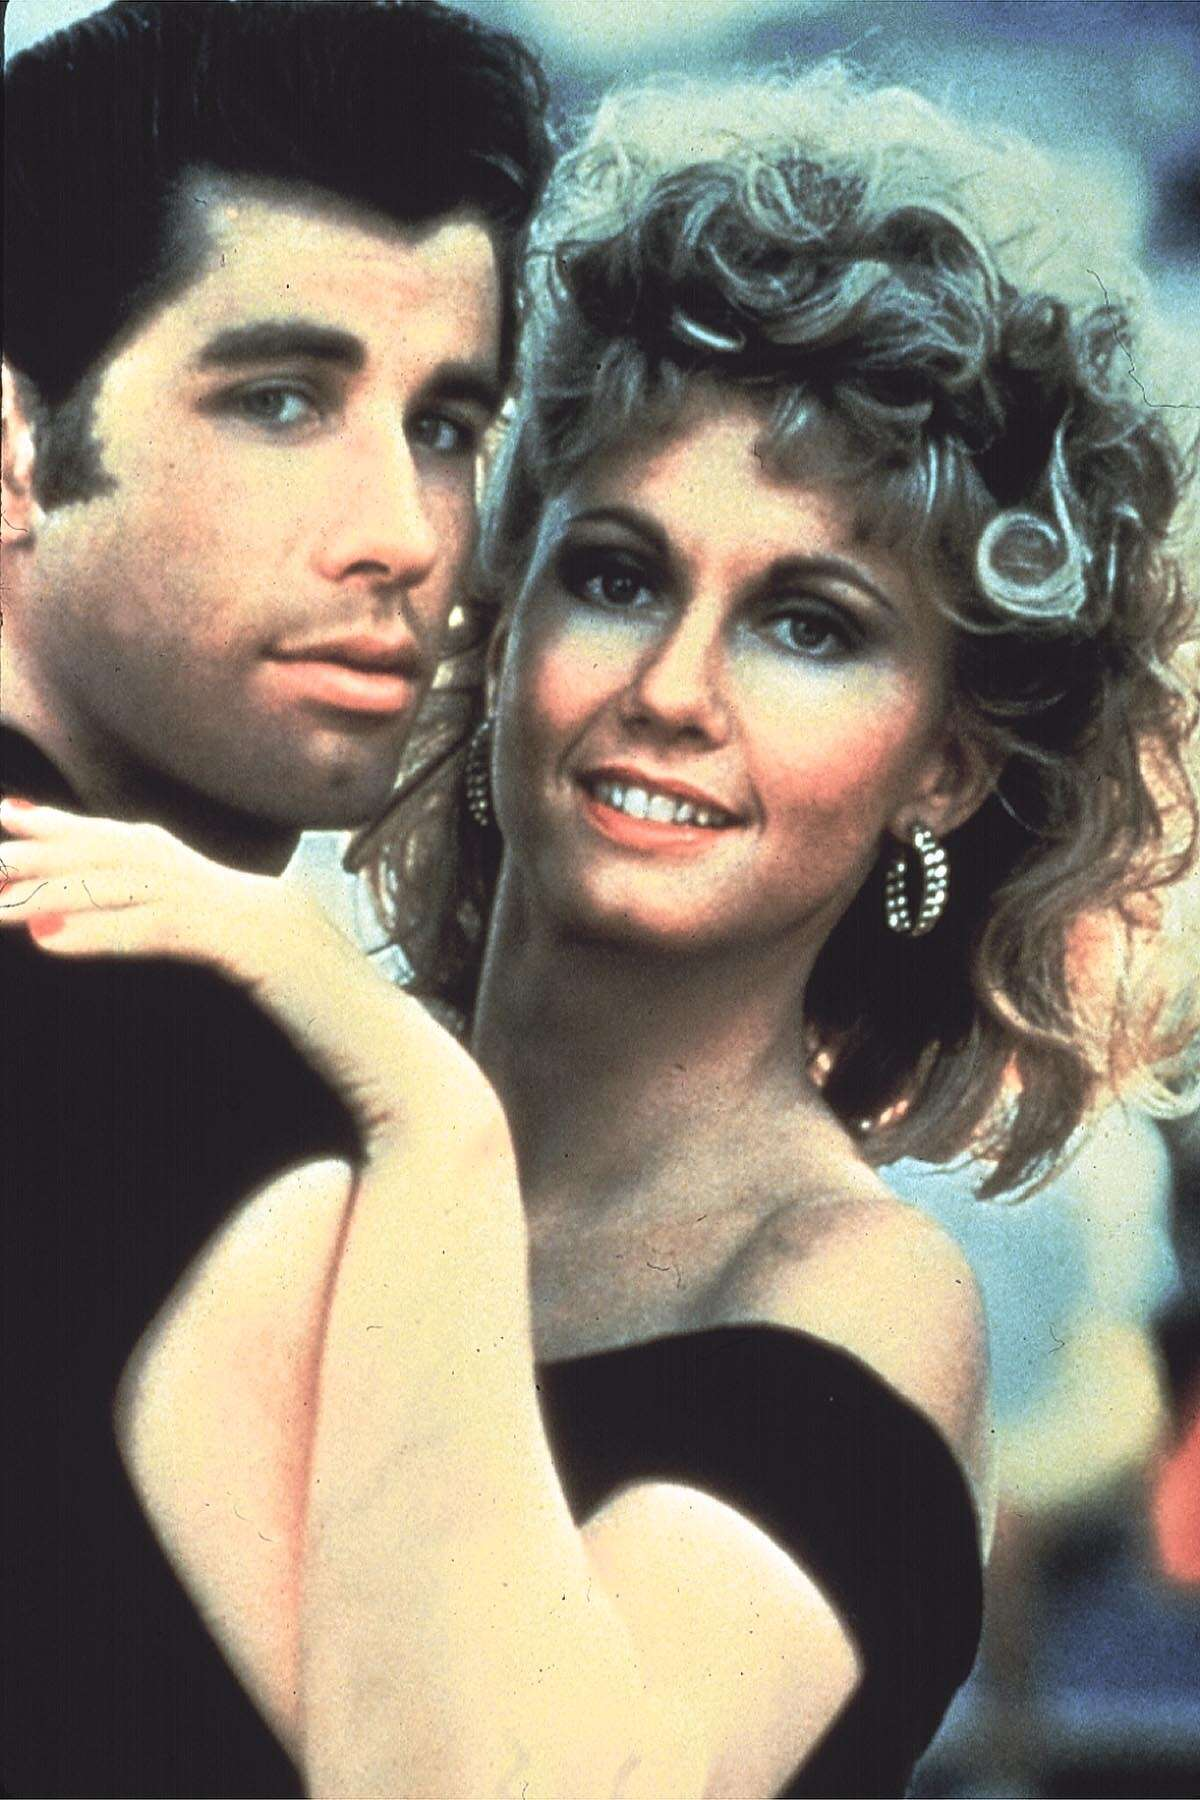 MV0135600000 1231_17 TNT 01-01-2001 8:00 PM Grease Best Bet John Travolta and Olivia Newton-John play high-schoolers reunited after a summer fling in the musical movie ''Grease,'' Monday, Jan. 1 (8-10:30 p.m. ET) on TNT. 4x6 Color 72dpi Photos-Jay